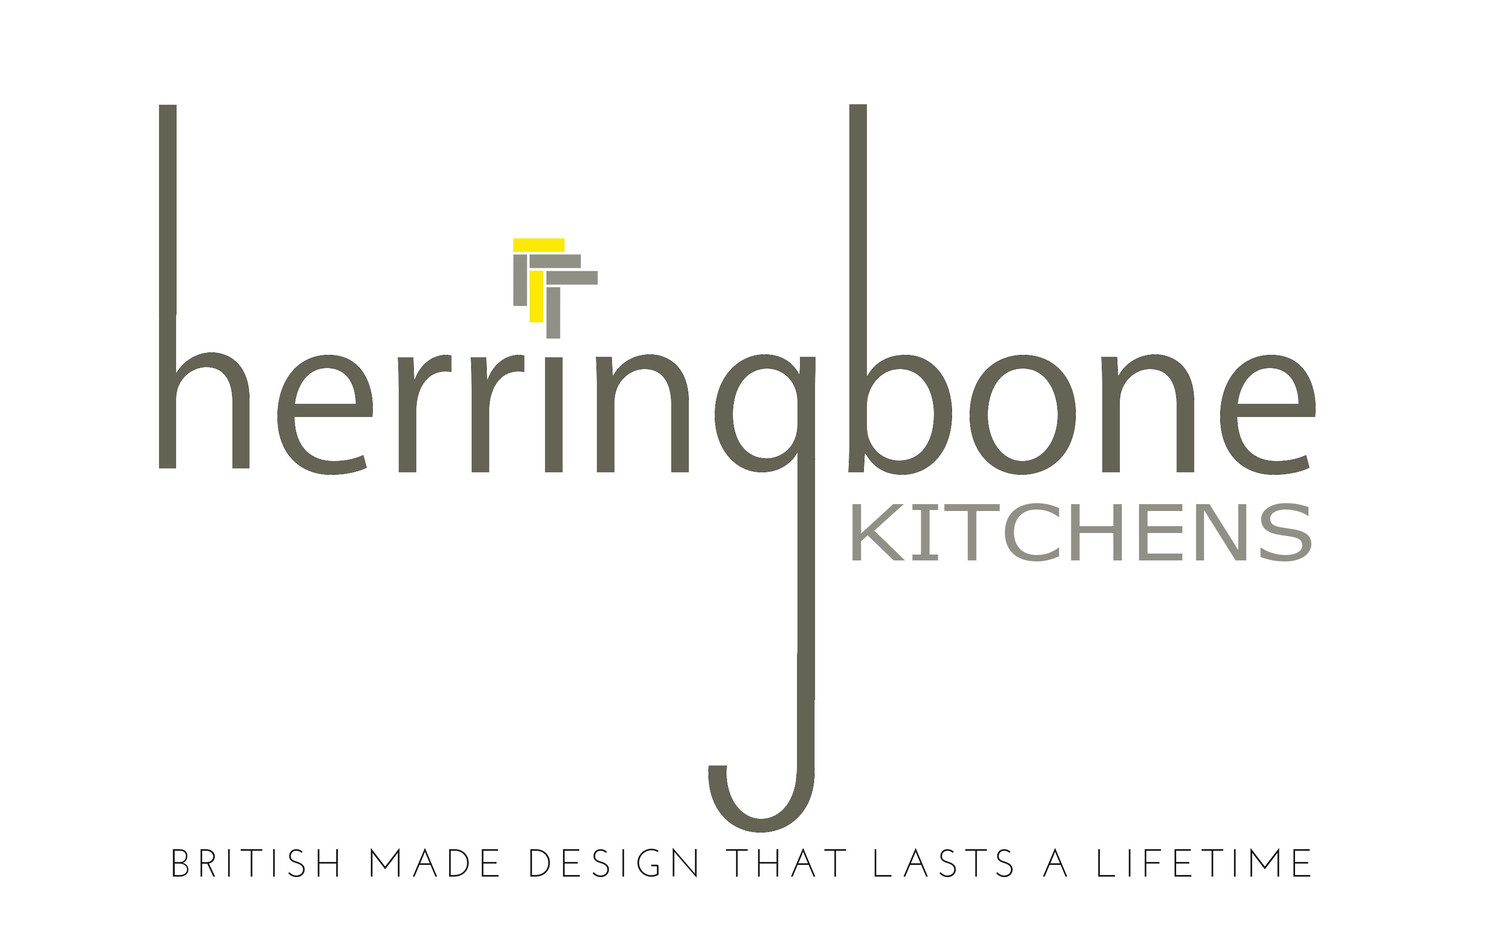 Herringbone Kitchens